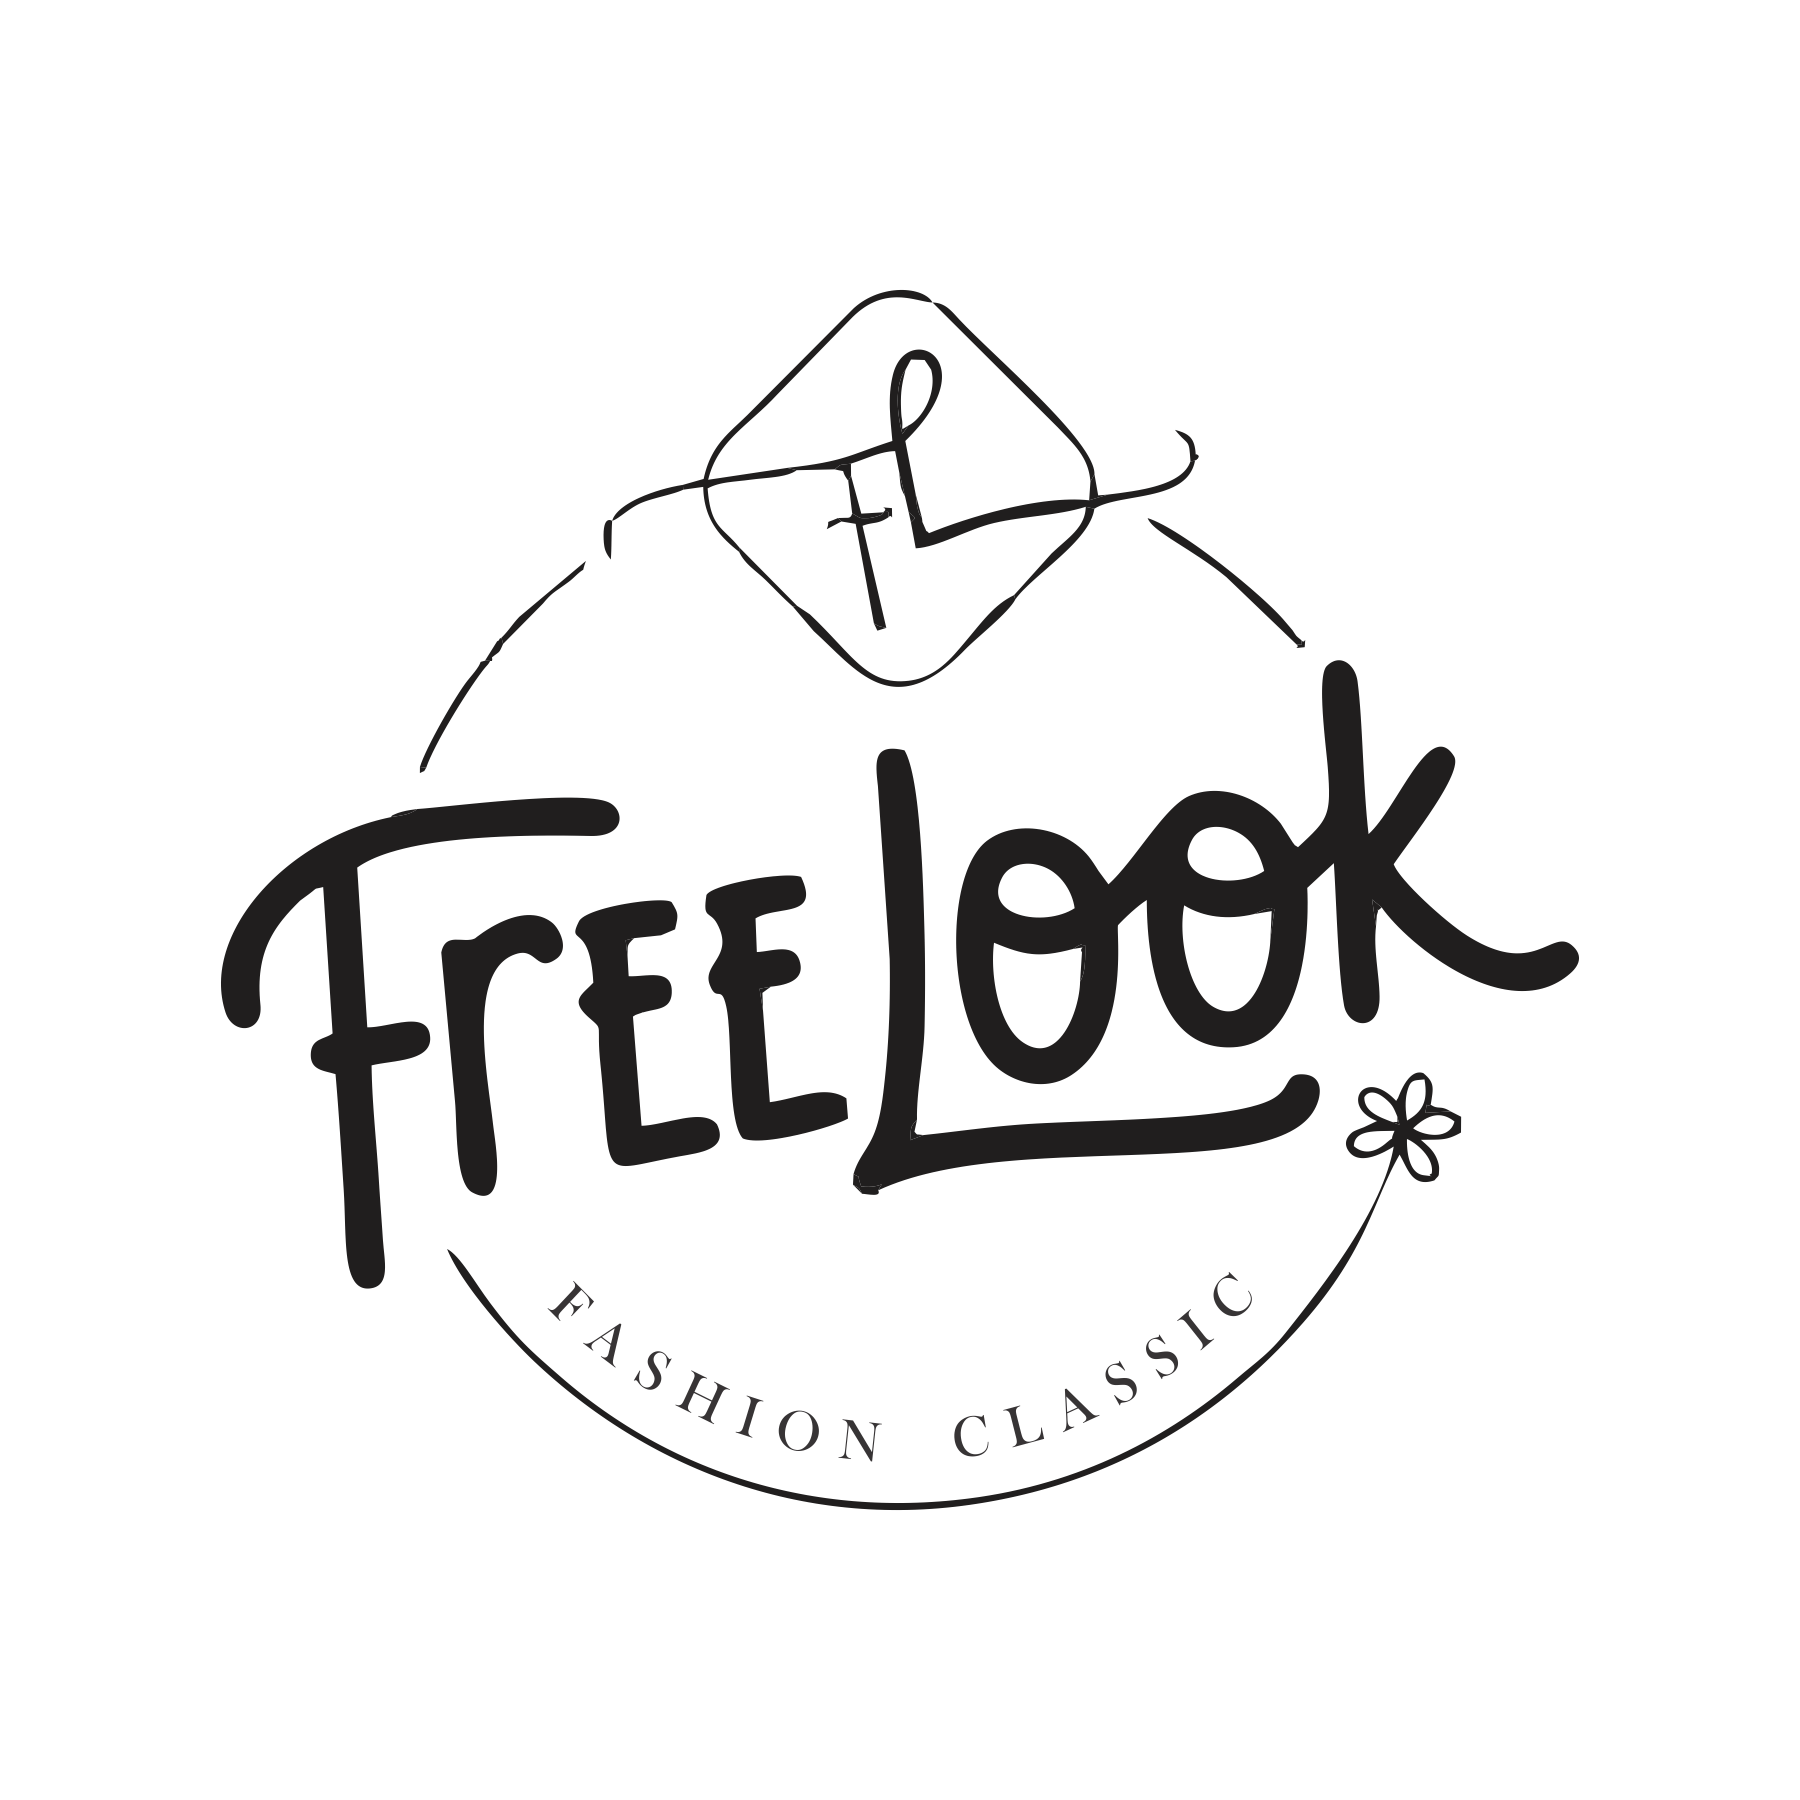 Free Look : Brand Short Description Type Here.